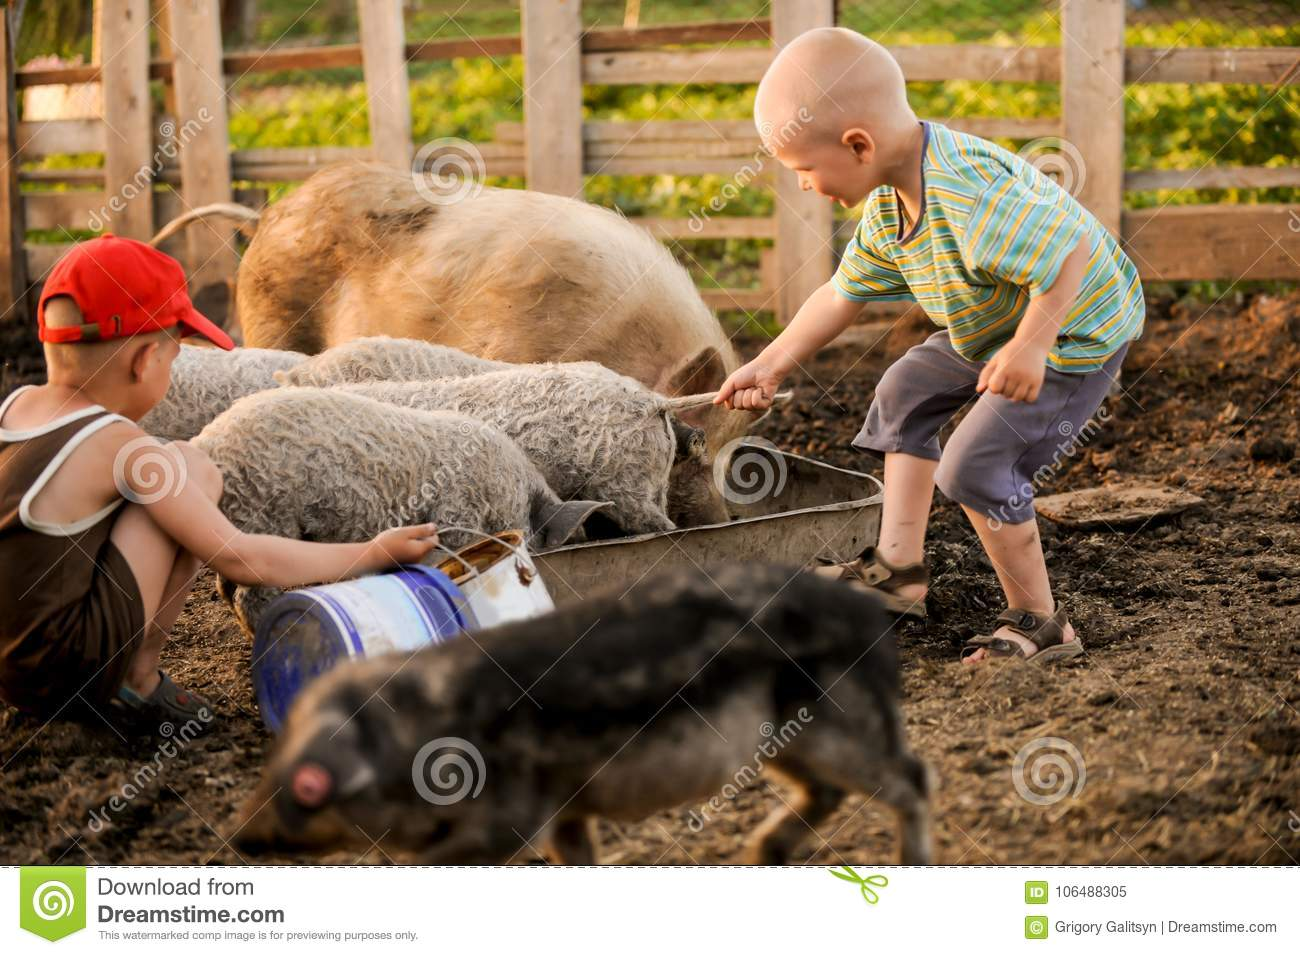 The boys take care of the pigs and feed them. The concept of small farms